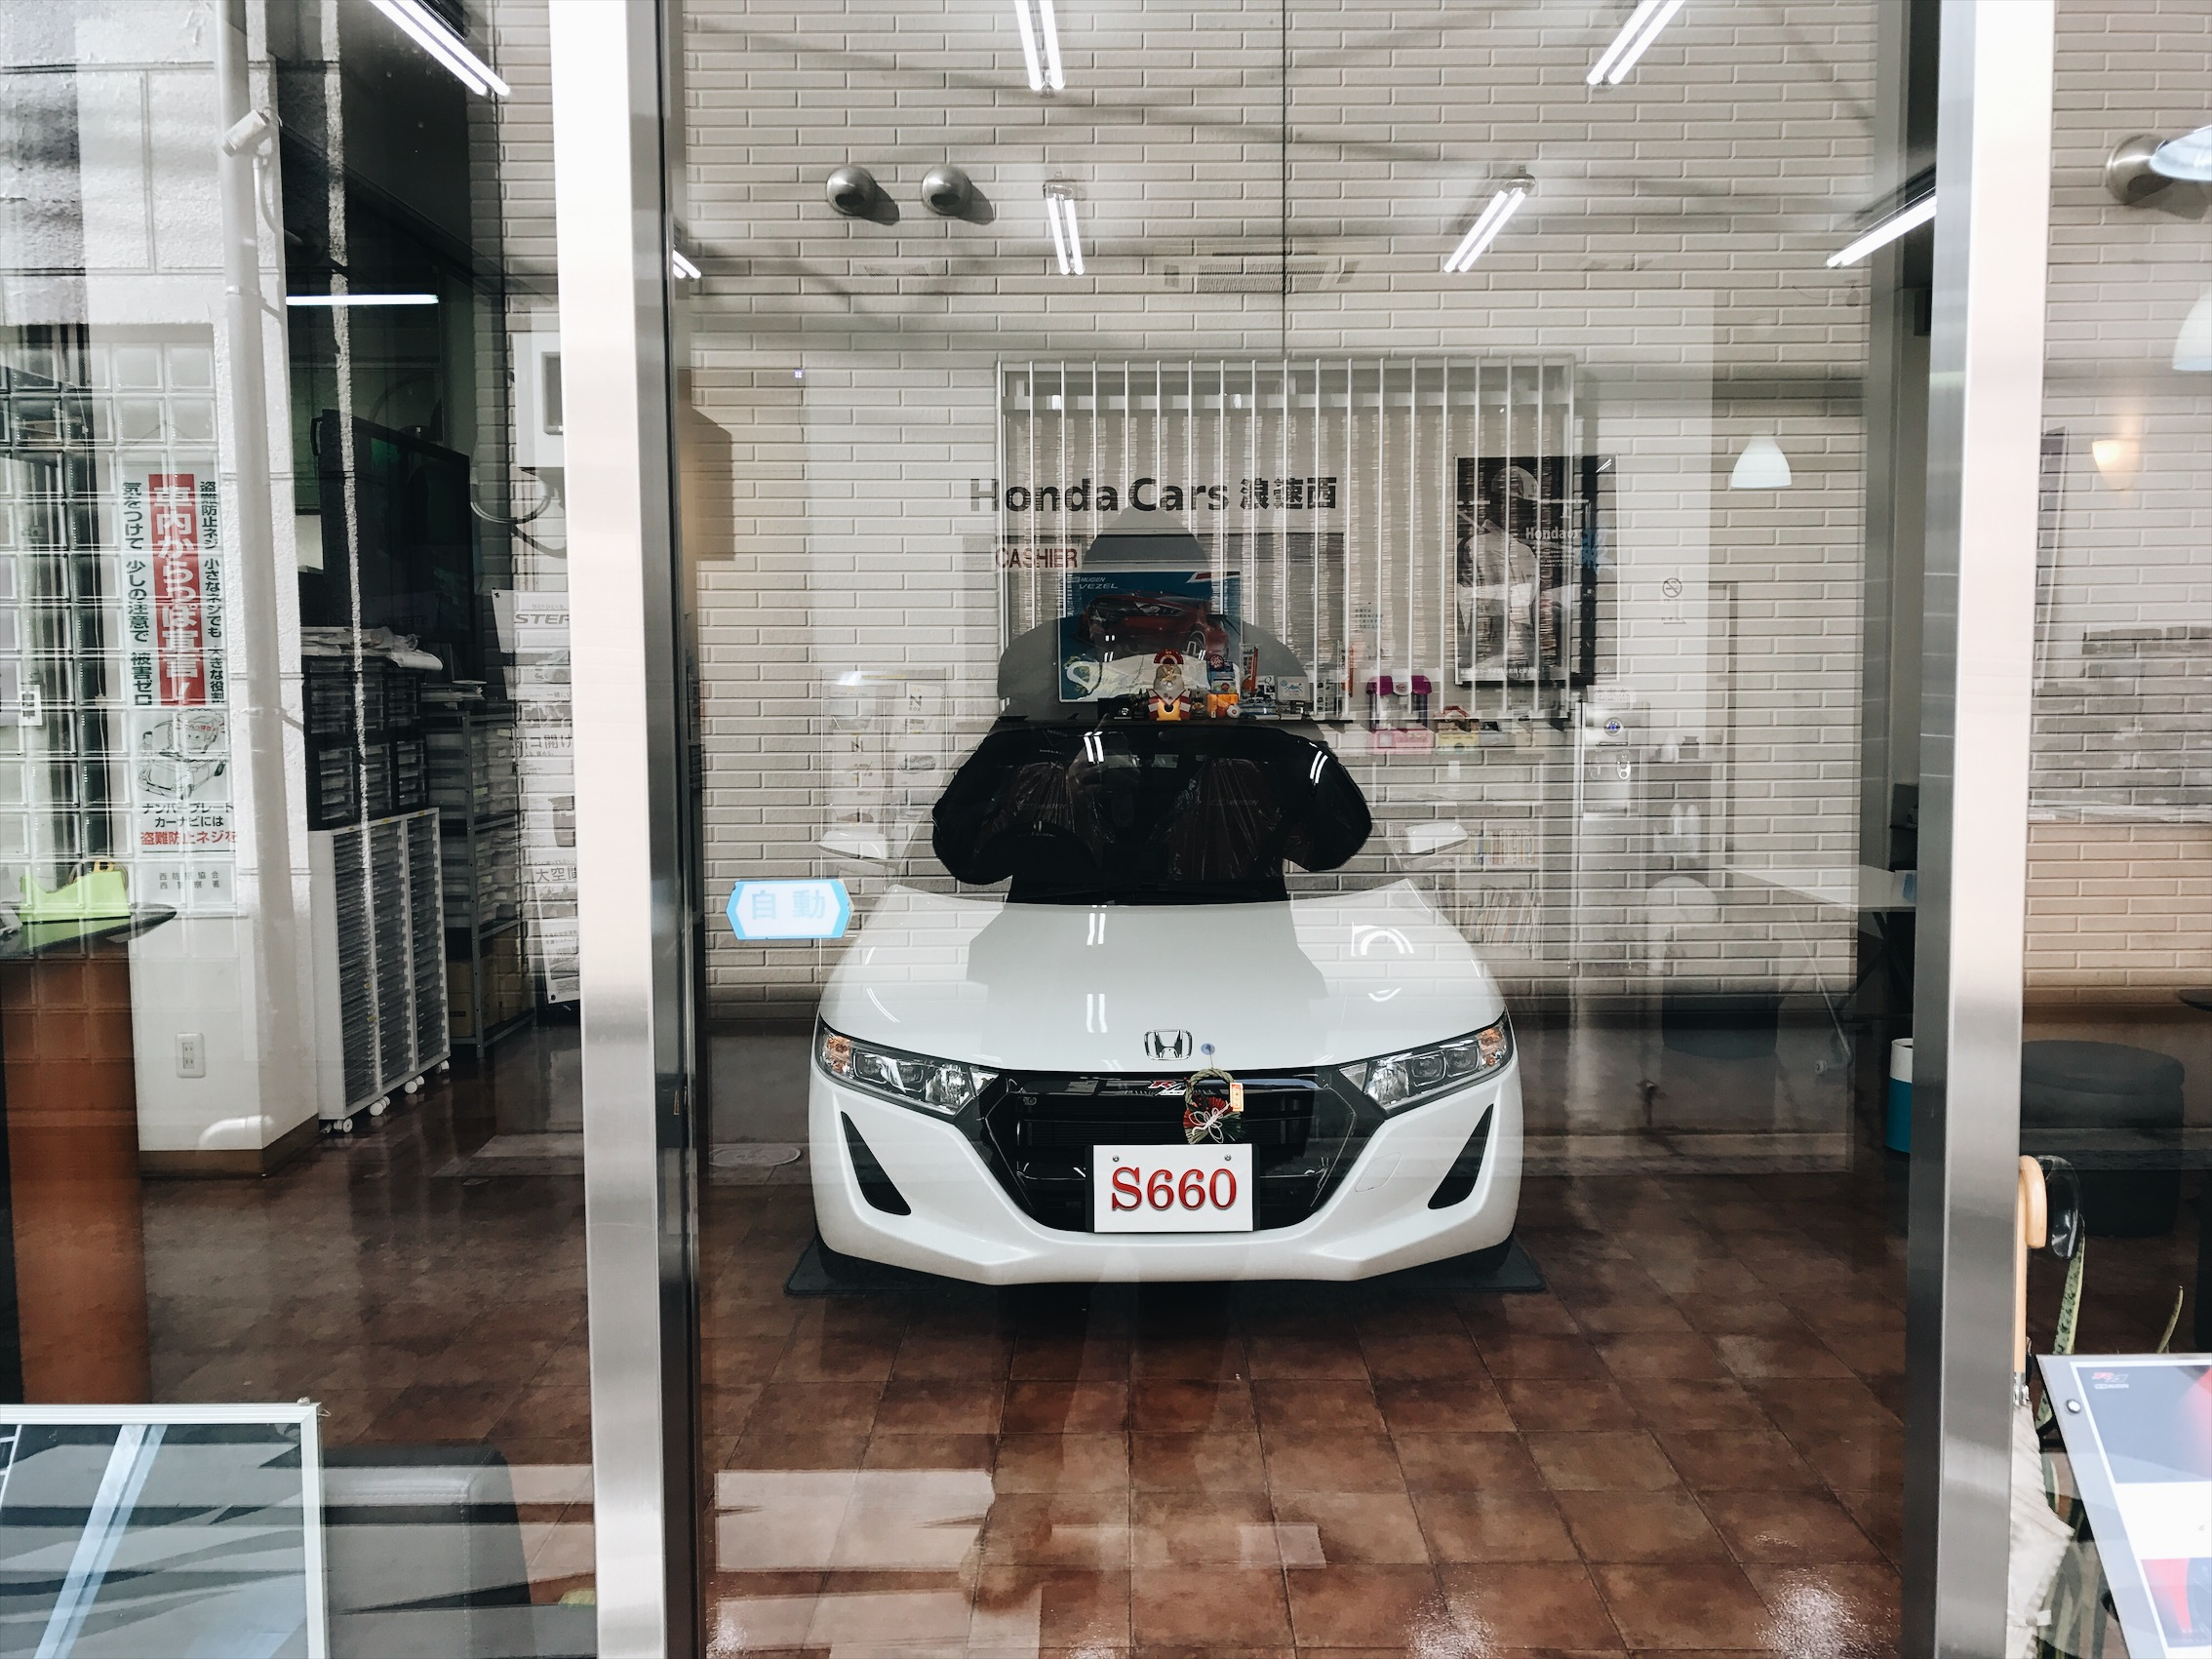 Spotted this Honda s660 at a Honda building. Not sure if it was service shop or a dealership, maybe both.